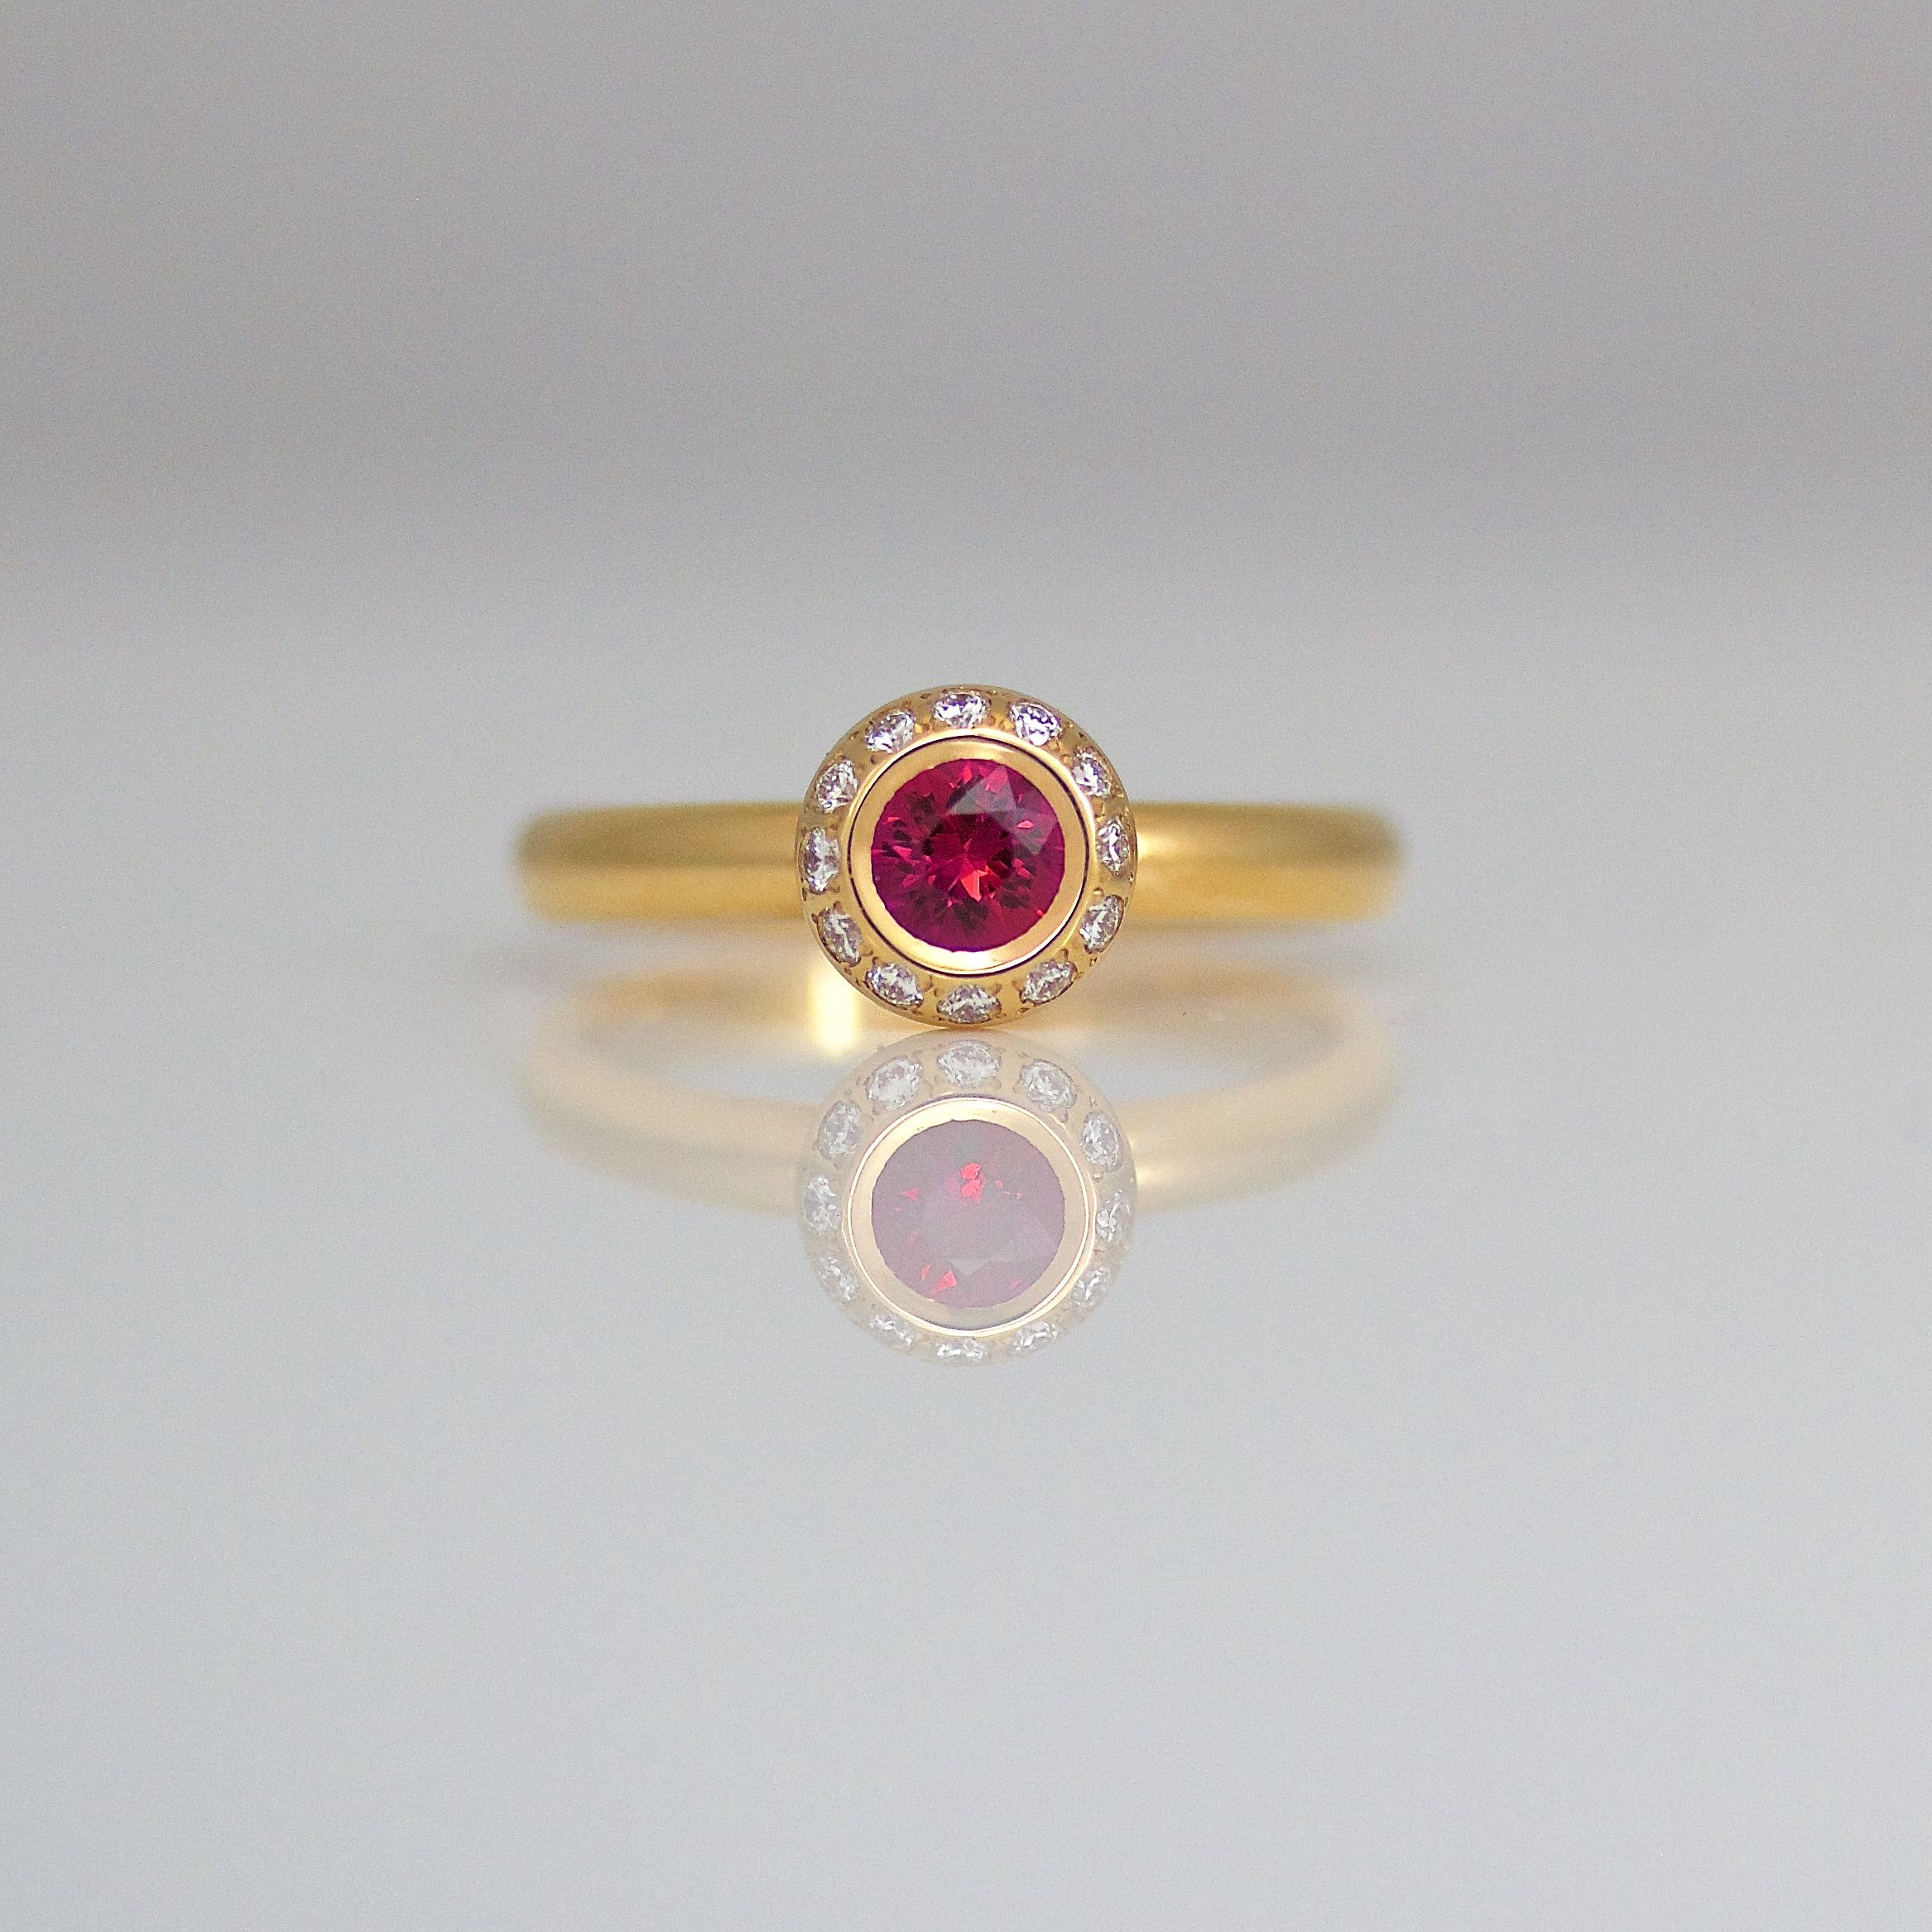 christie exceptional and diamond diamon ring ruby s lot details lotfinder nyr an